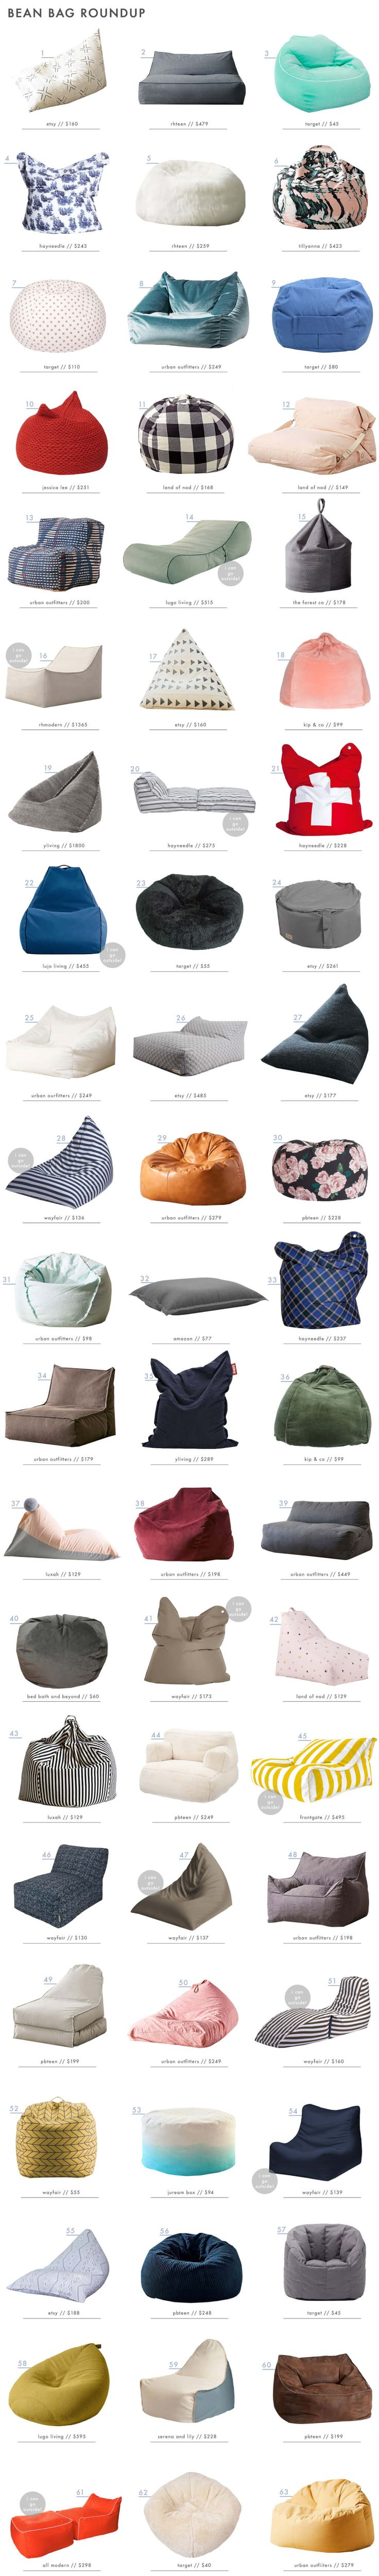 Best 25 Oversized bean bag chairs ideas on Pinterest